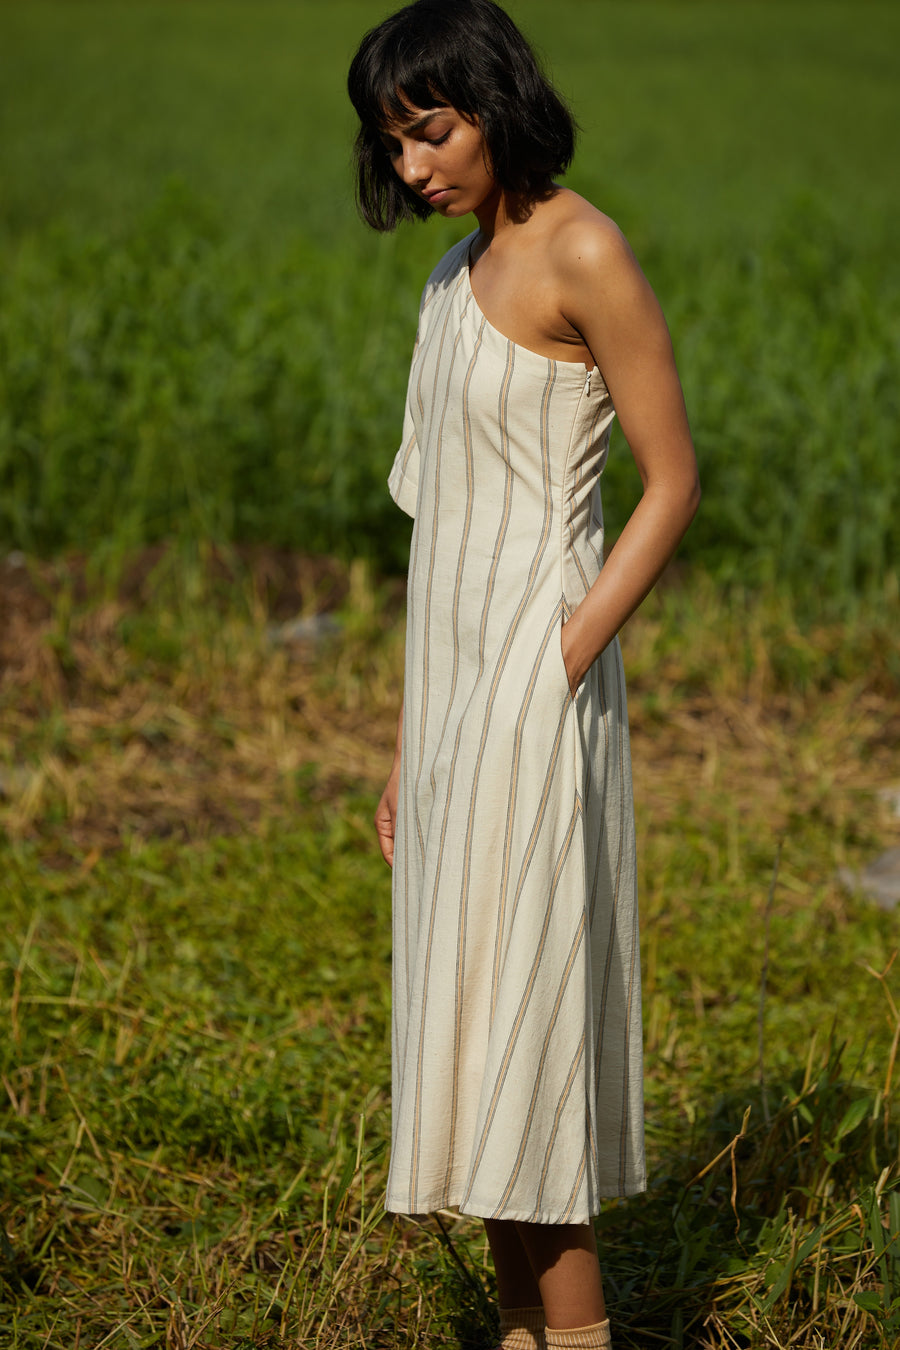 Asagaon Dress - Ethical made fashion - onlyethikal